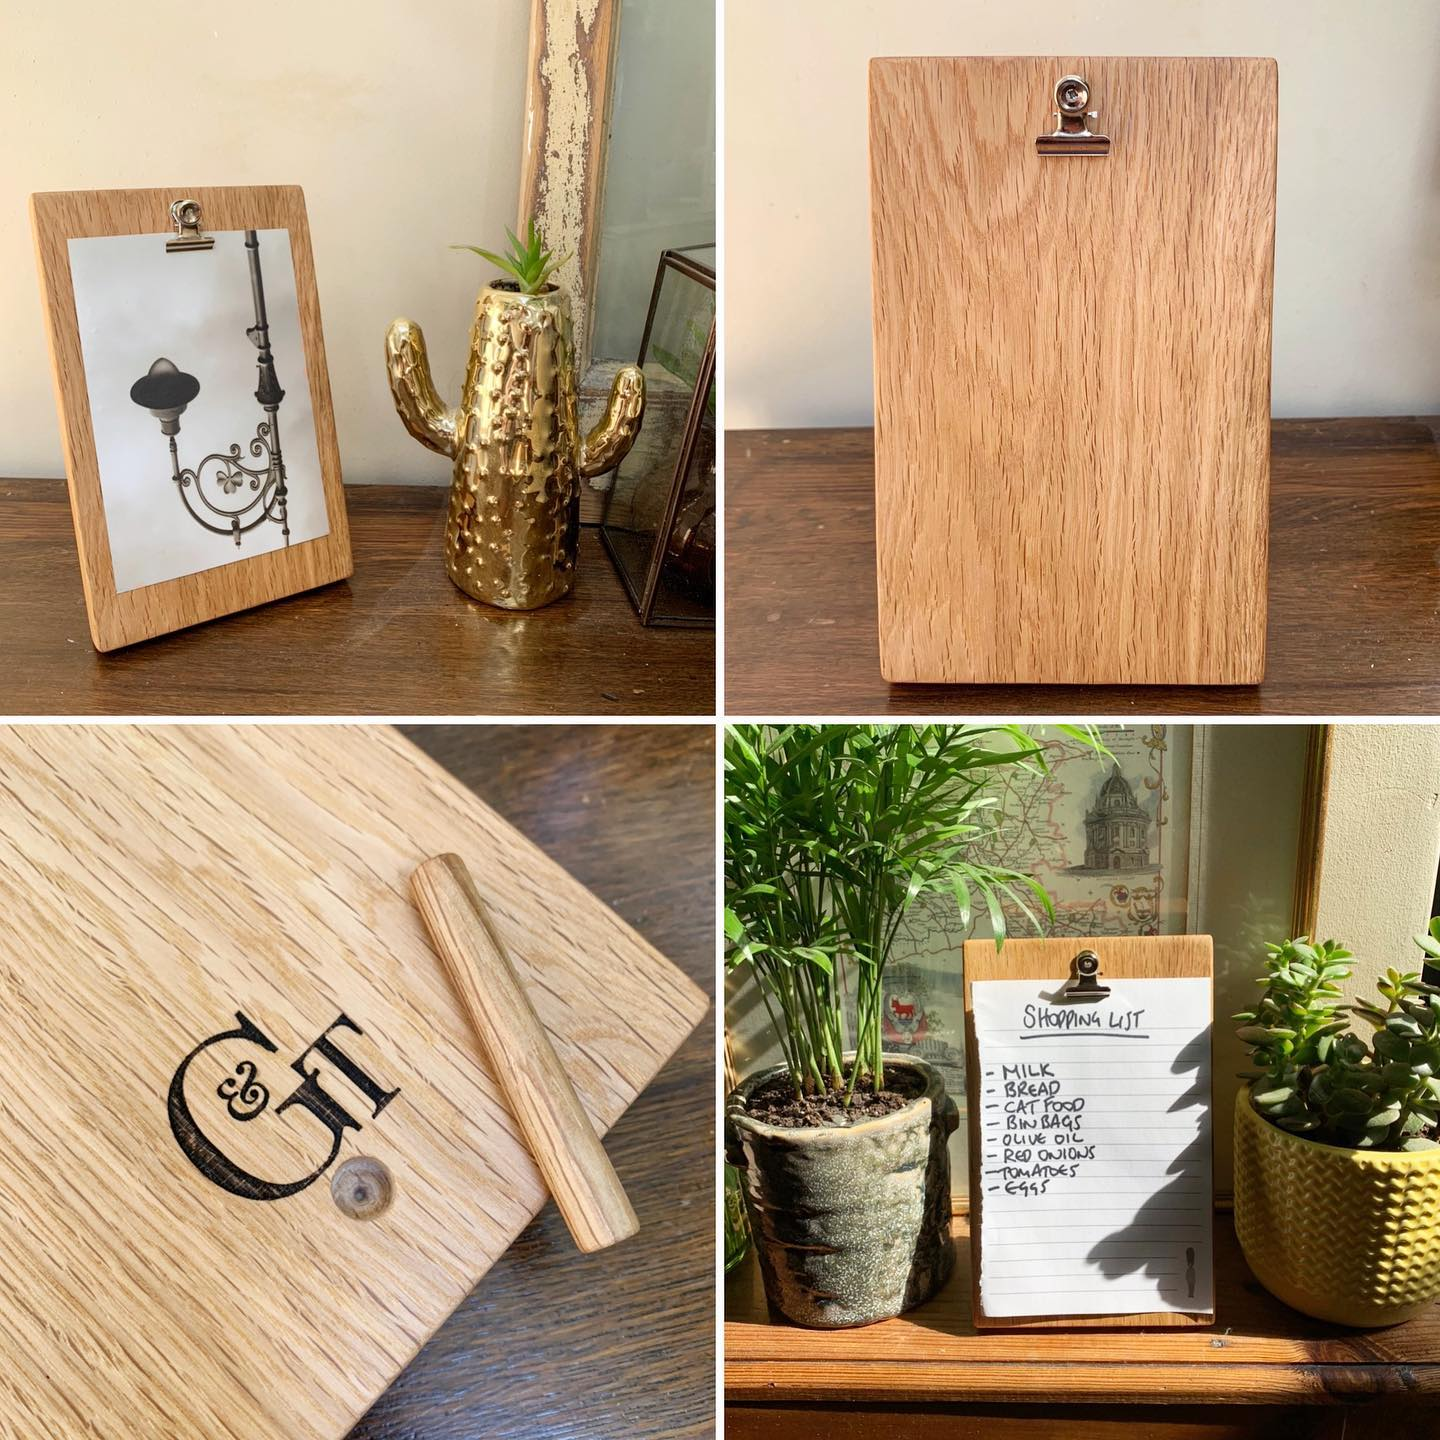 Handcrafted Oak photo/note stand now available on our website. This simple design is great for photos, notes or shopping lists. The clip mechanism means that changing what you have on display is super quick and easy. £12 + P&P ...#anotetosay #memo #photoframe #postitnotes #handcrafted #homewares #gingerandtweed #workingfromhome #homedecor #display #simplicity #oak